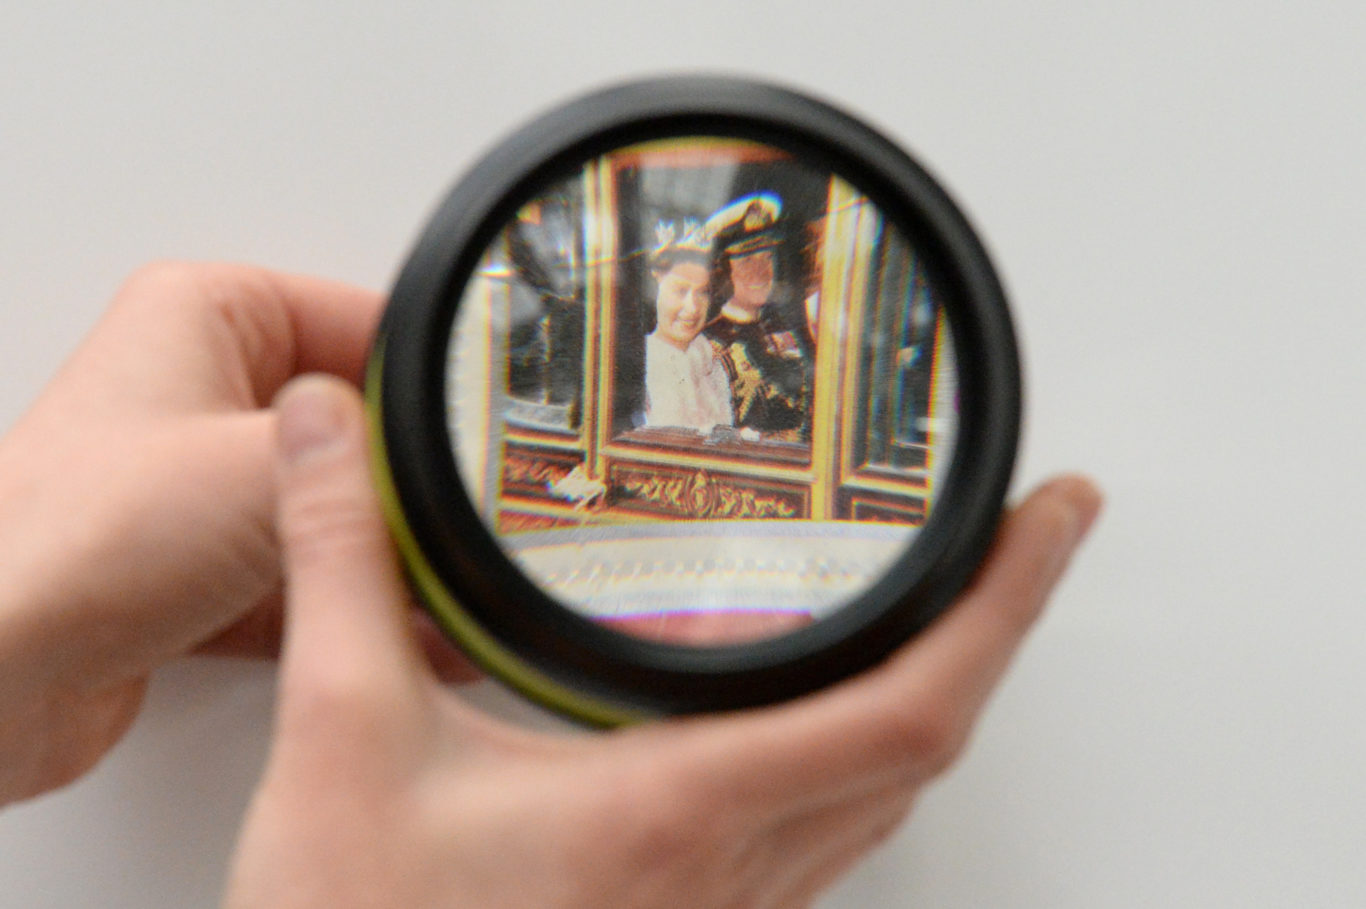 A visitor looks at a Silver Jubilee stamp through a magnifying glass (Kirsty O'Connor/PA)